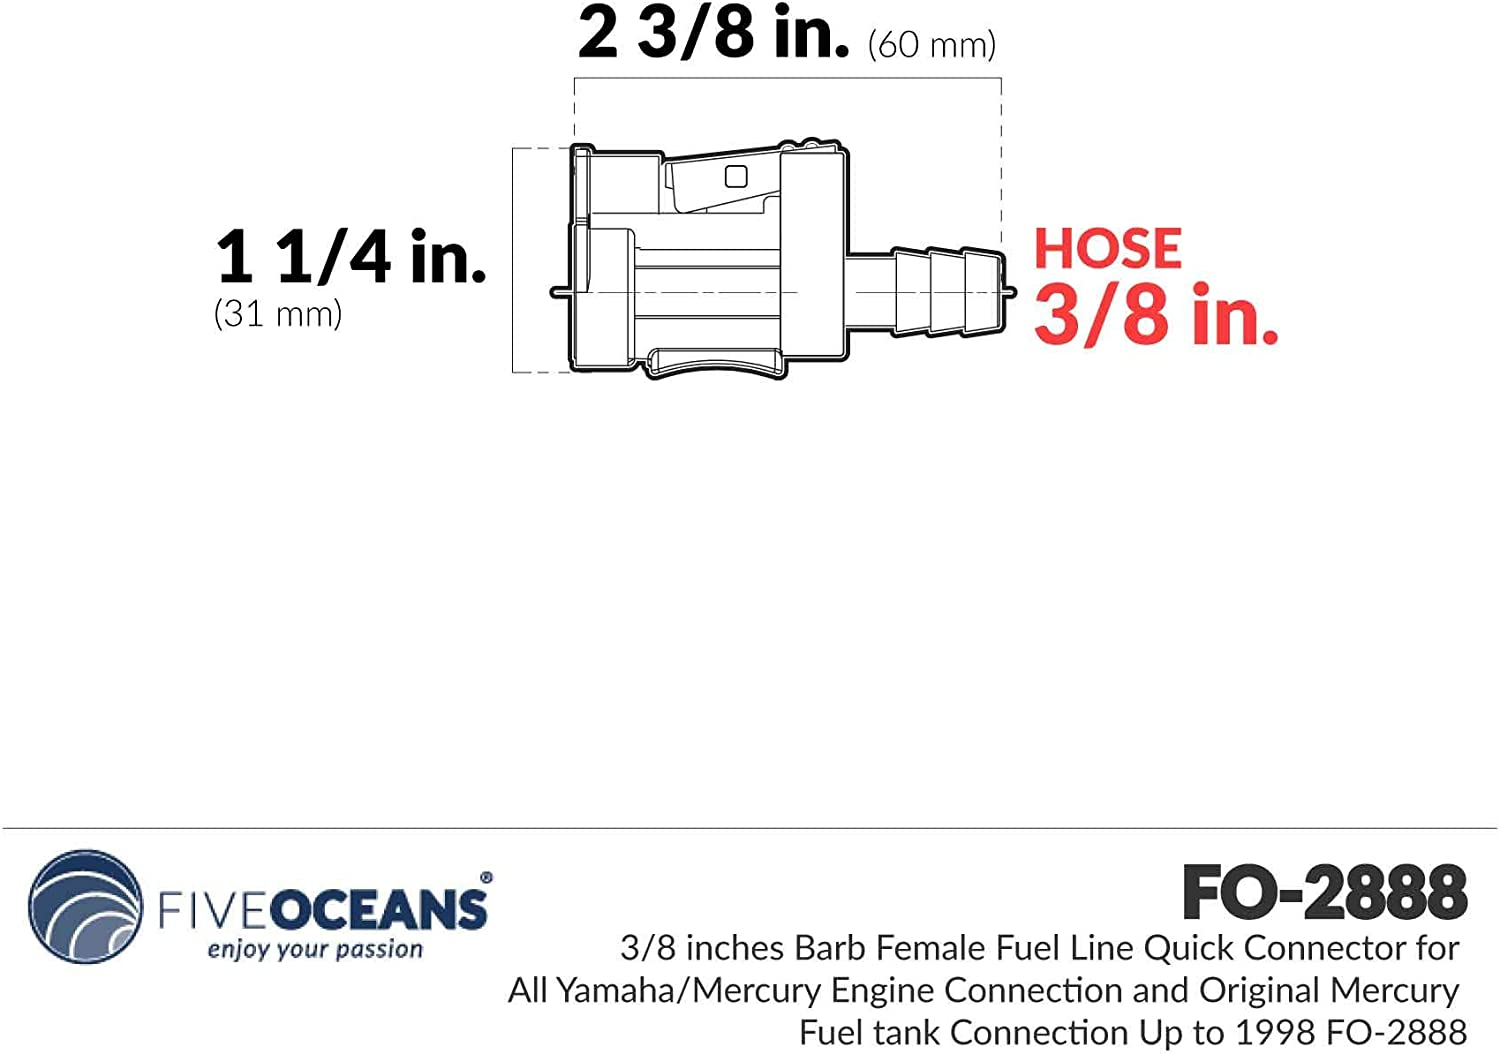 Five Oceans 3//8 Barb Female Fuel Line Quick Connector for All Yamaha//Mercury Engine Connection and Original Mercury Fuel Tank Connection Up to 1998 FO-2888